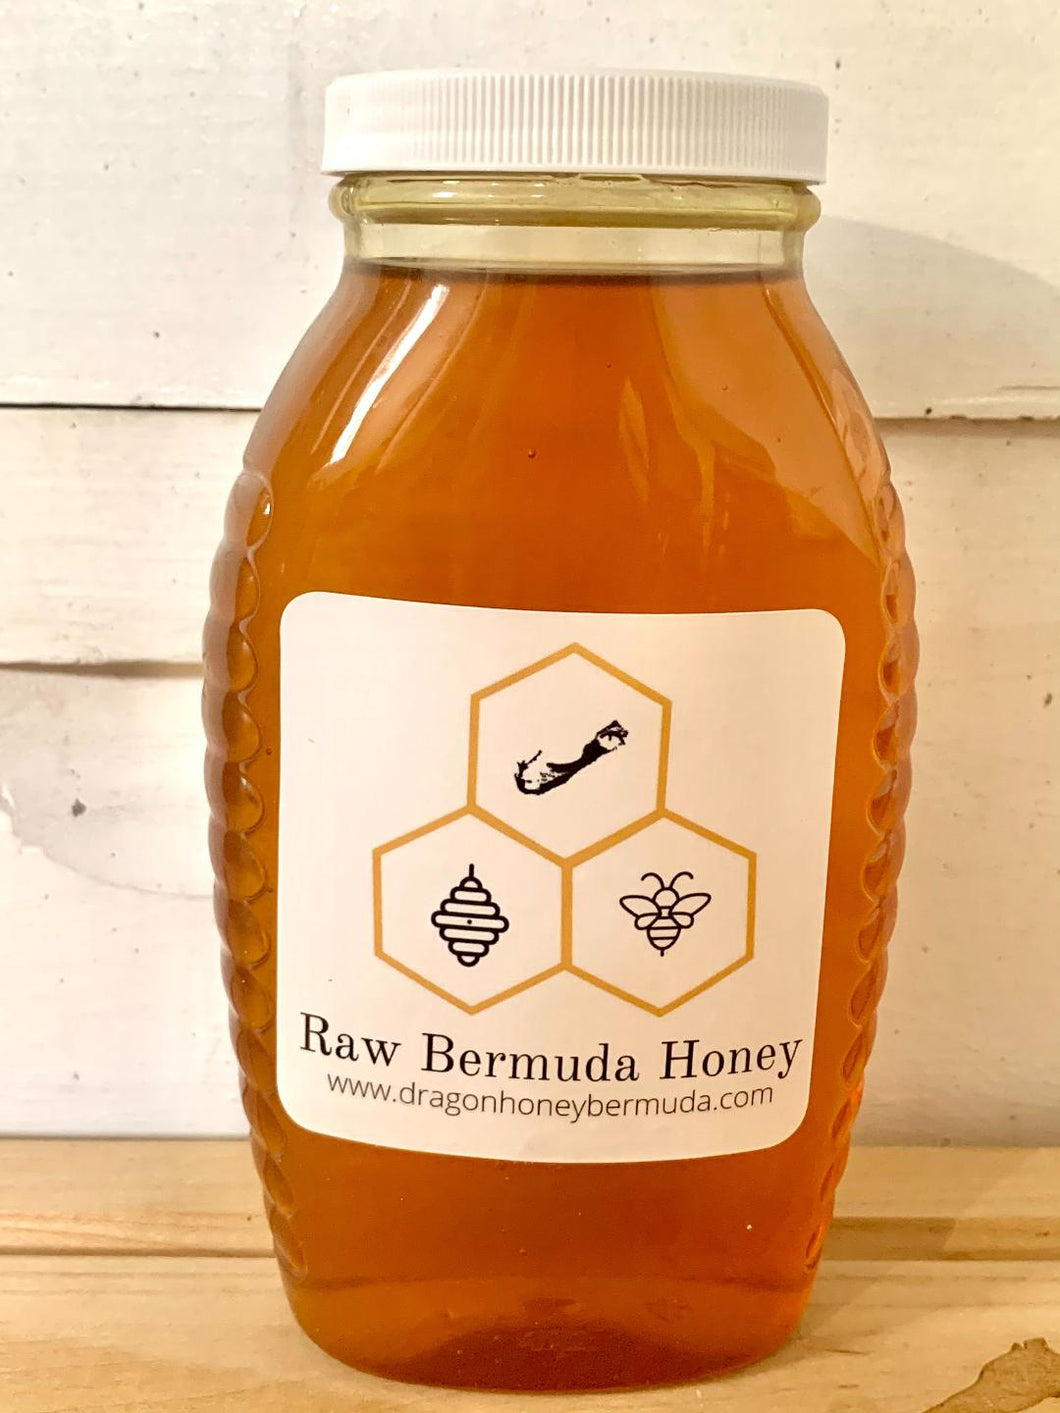 2 lb Raw Bermuda Honey